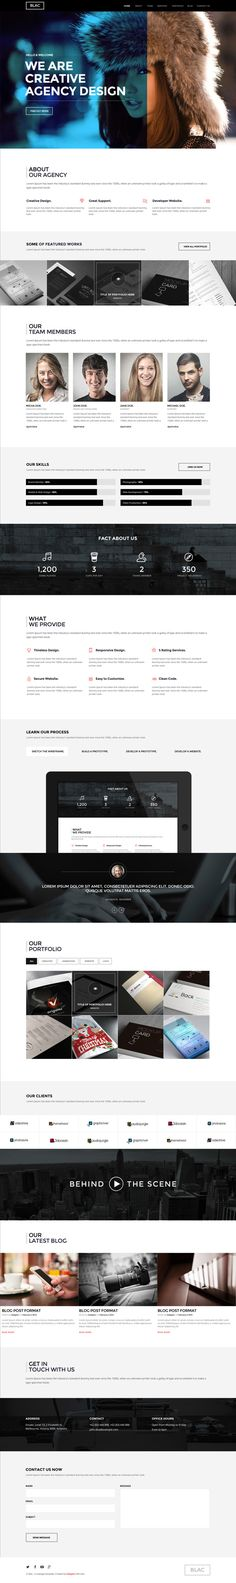 http://www.webdesignserved.com/gallery/Blac-Ultimate-Simple-One-Page-PSD-Template/15690501